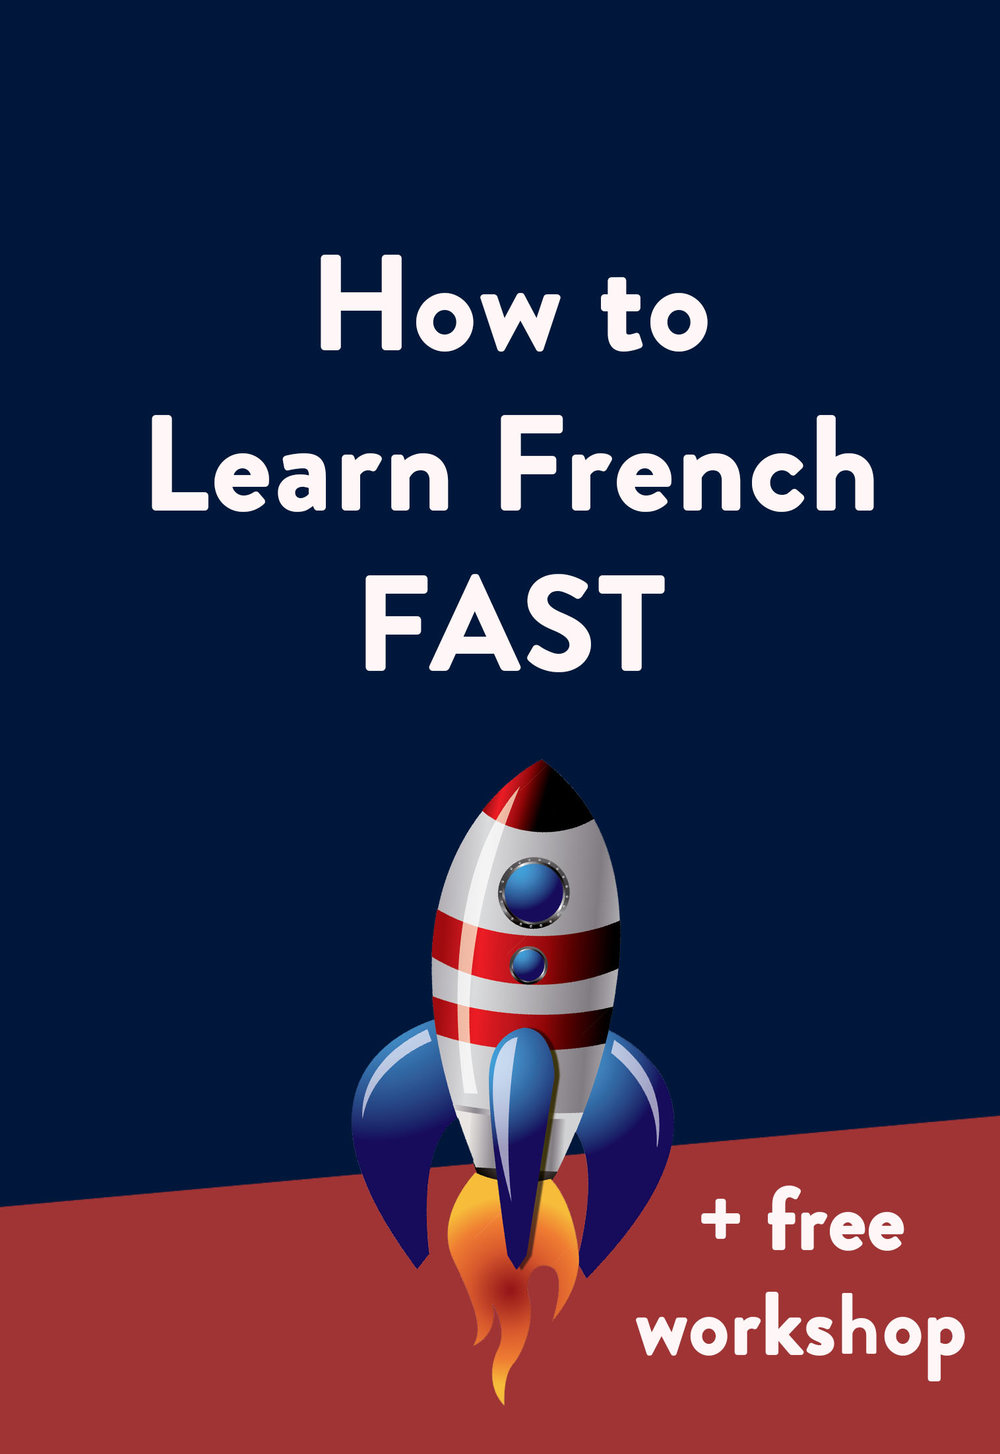 Two types of study that will make you learn French fast